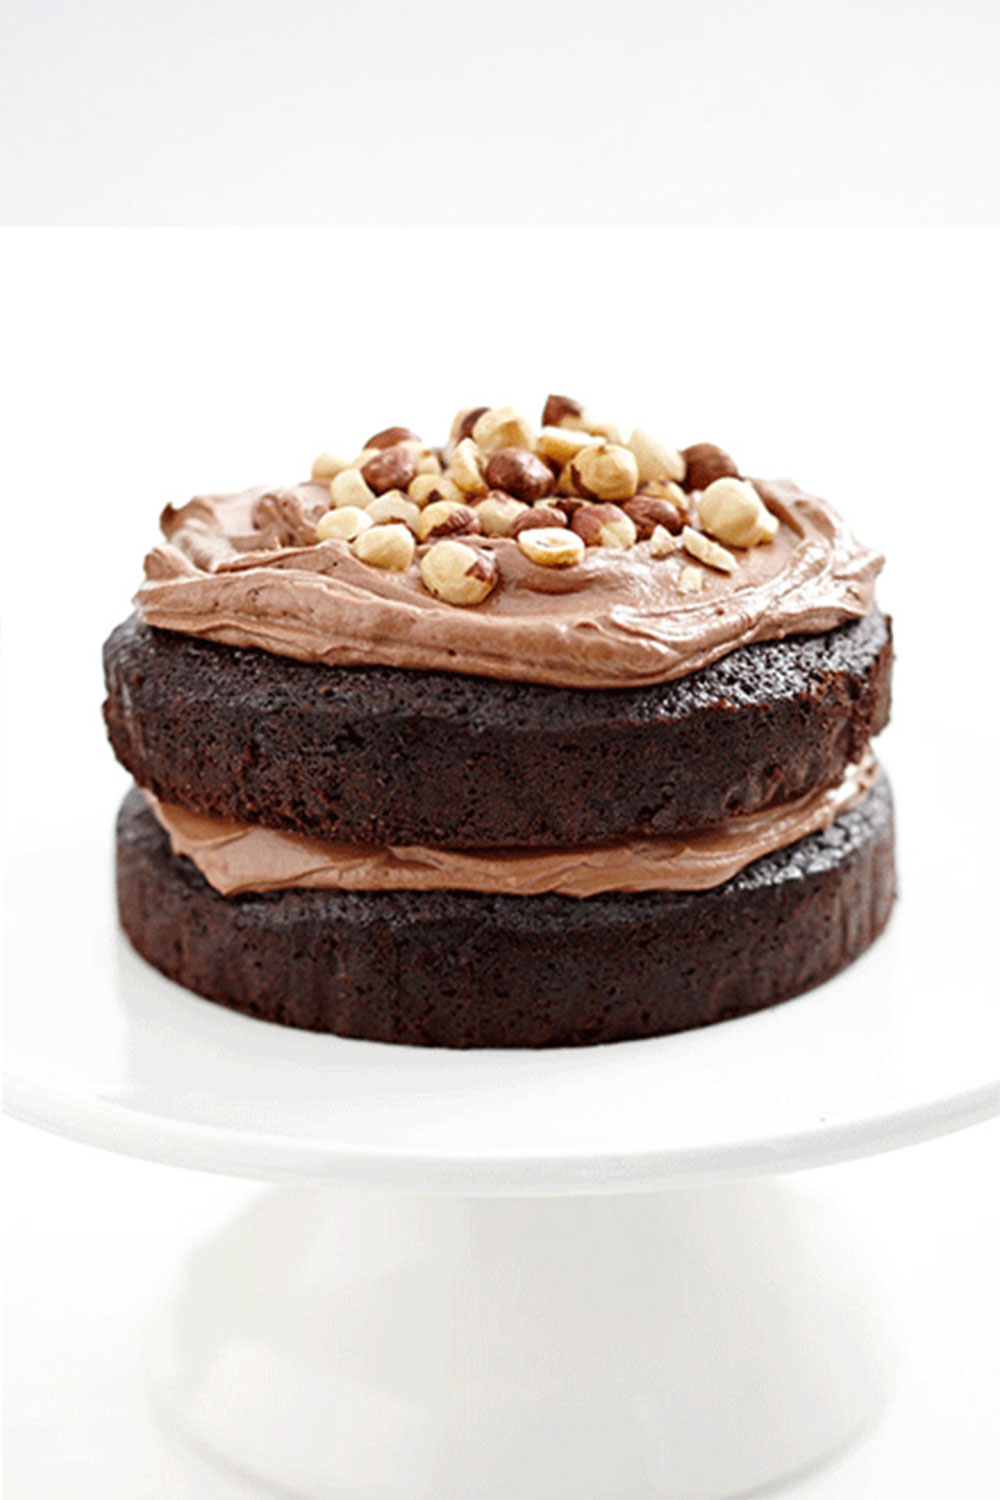 BOILED-chocolate-cake.jpg